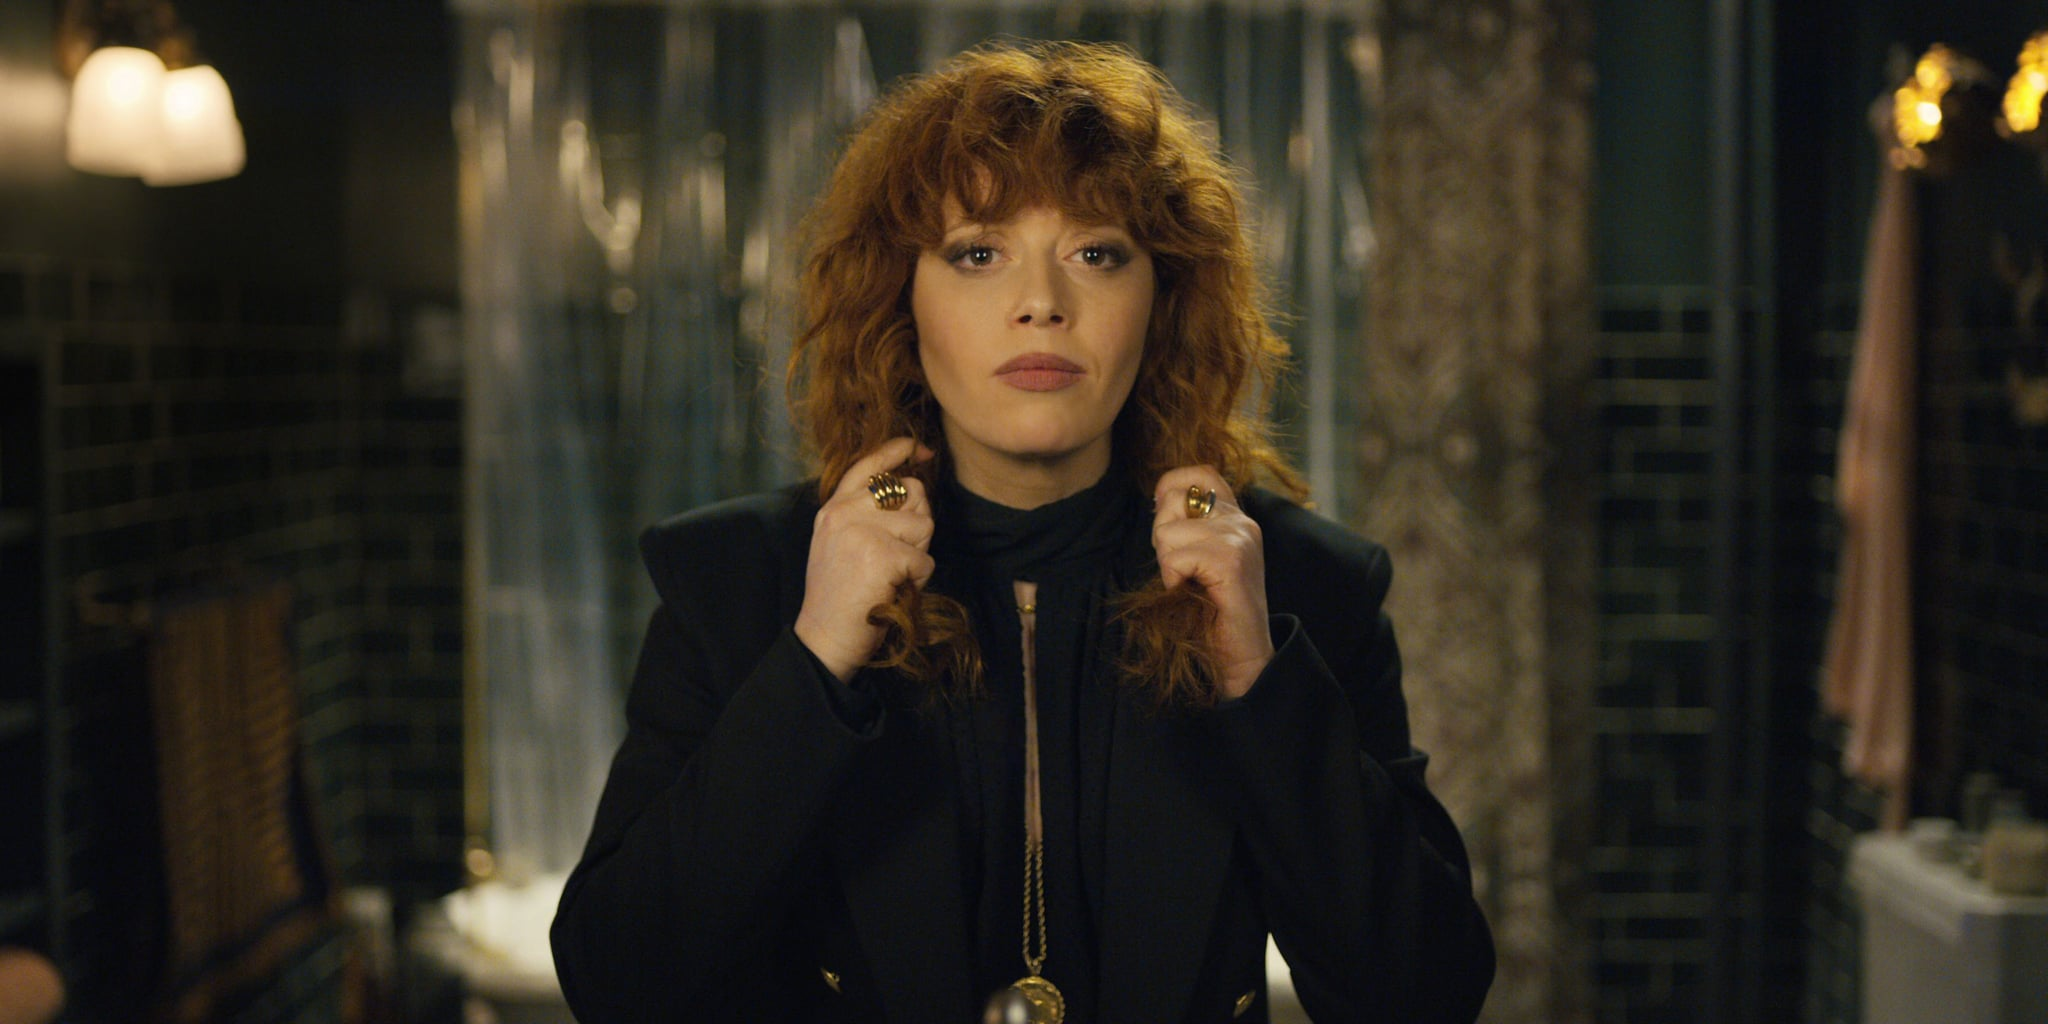 RUSSIAN DOLL, Natasha Lyonne, (Season 1, Episode 101, aired February 1, 2019), ph: Netflix / courtesy Everett Collection